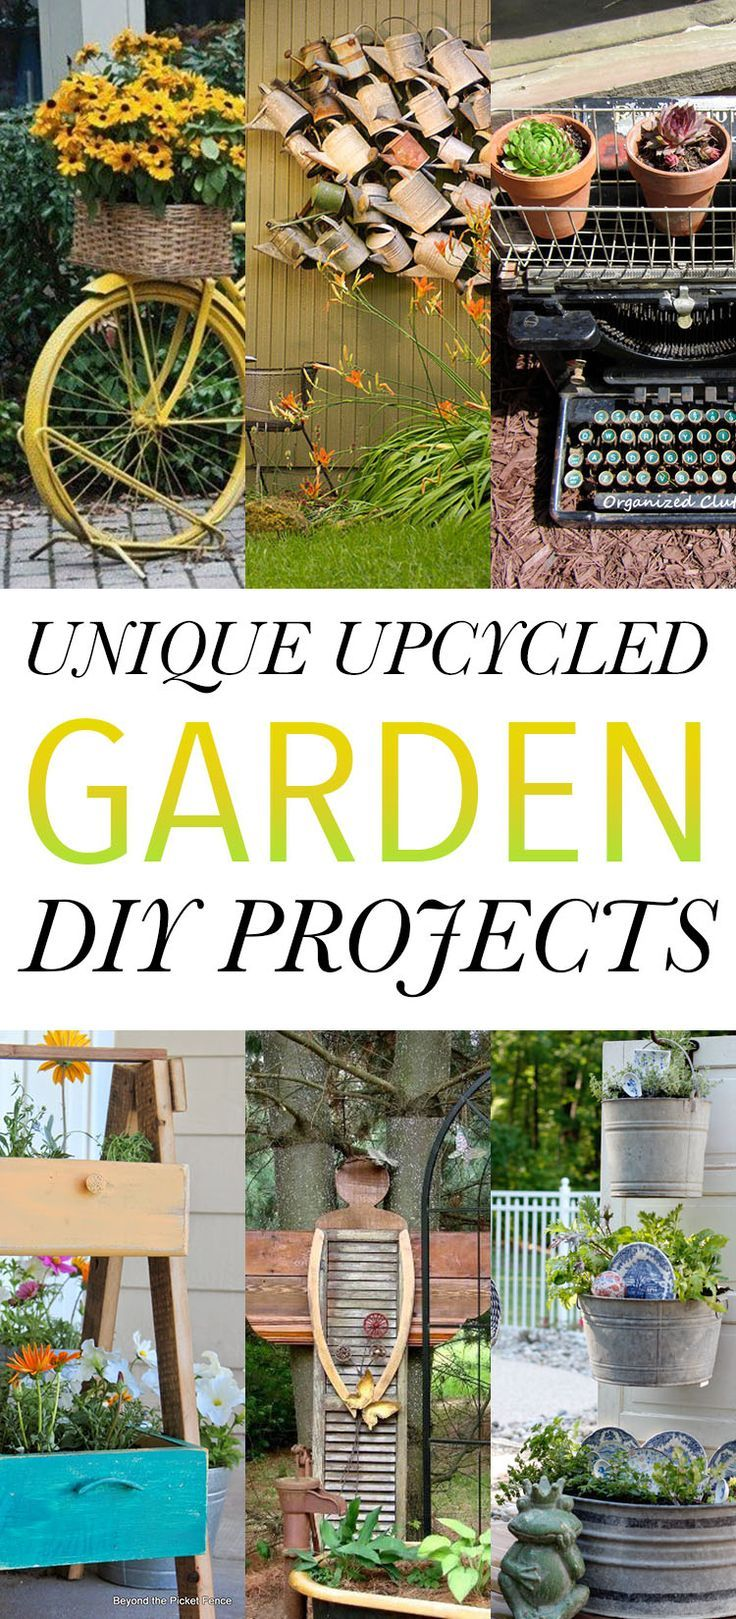 Garden decor crafts   best Projects to try images on Pinterest  Home ideas Homes and